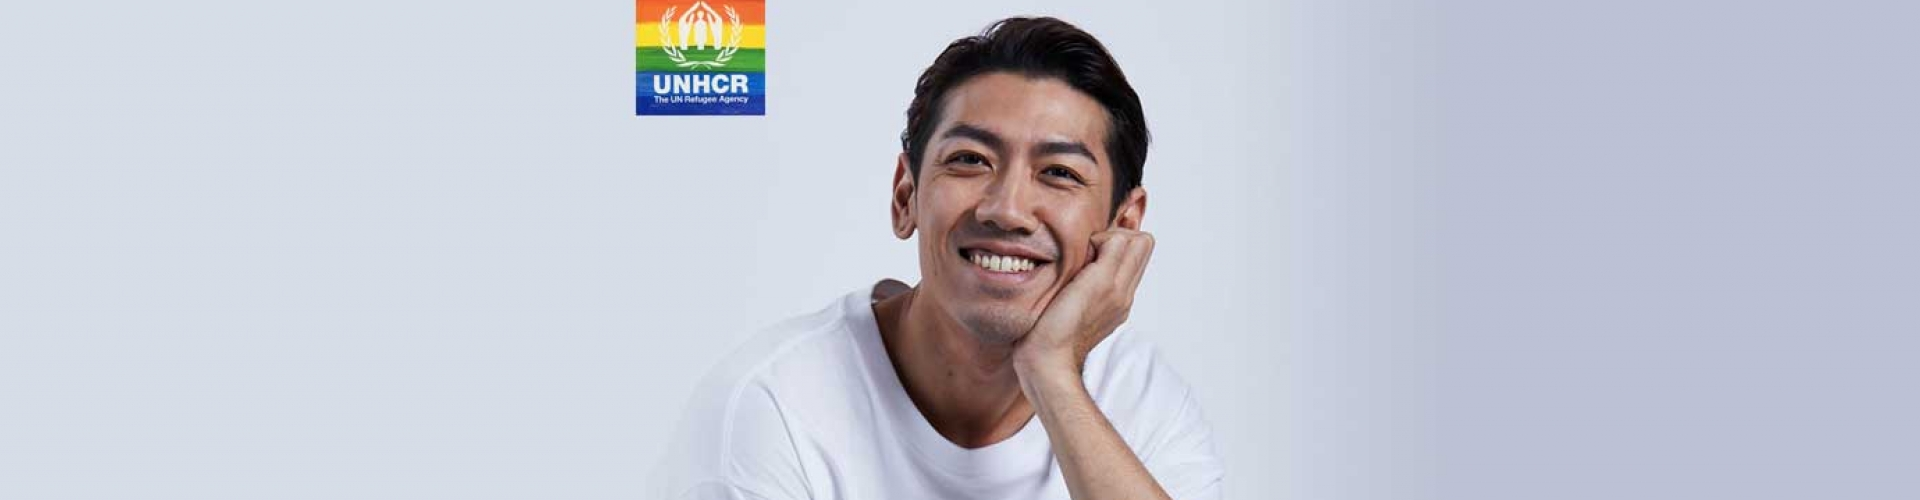 Join the campaign with UNHCR and Niti 'Pompan' Chaichitathorn to save lives of LGBTI refugees and refugee families worldwide.